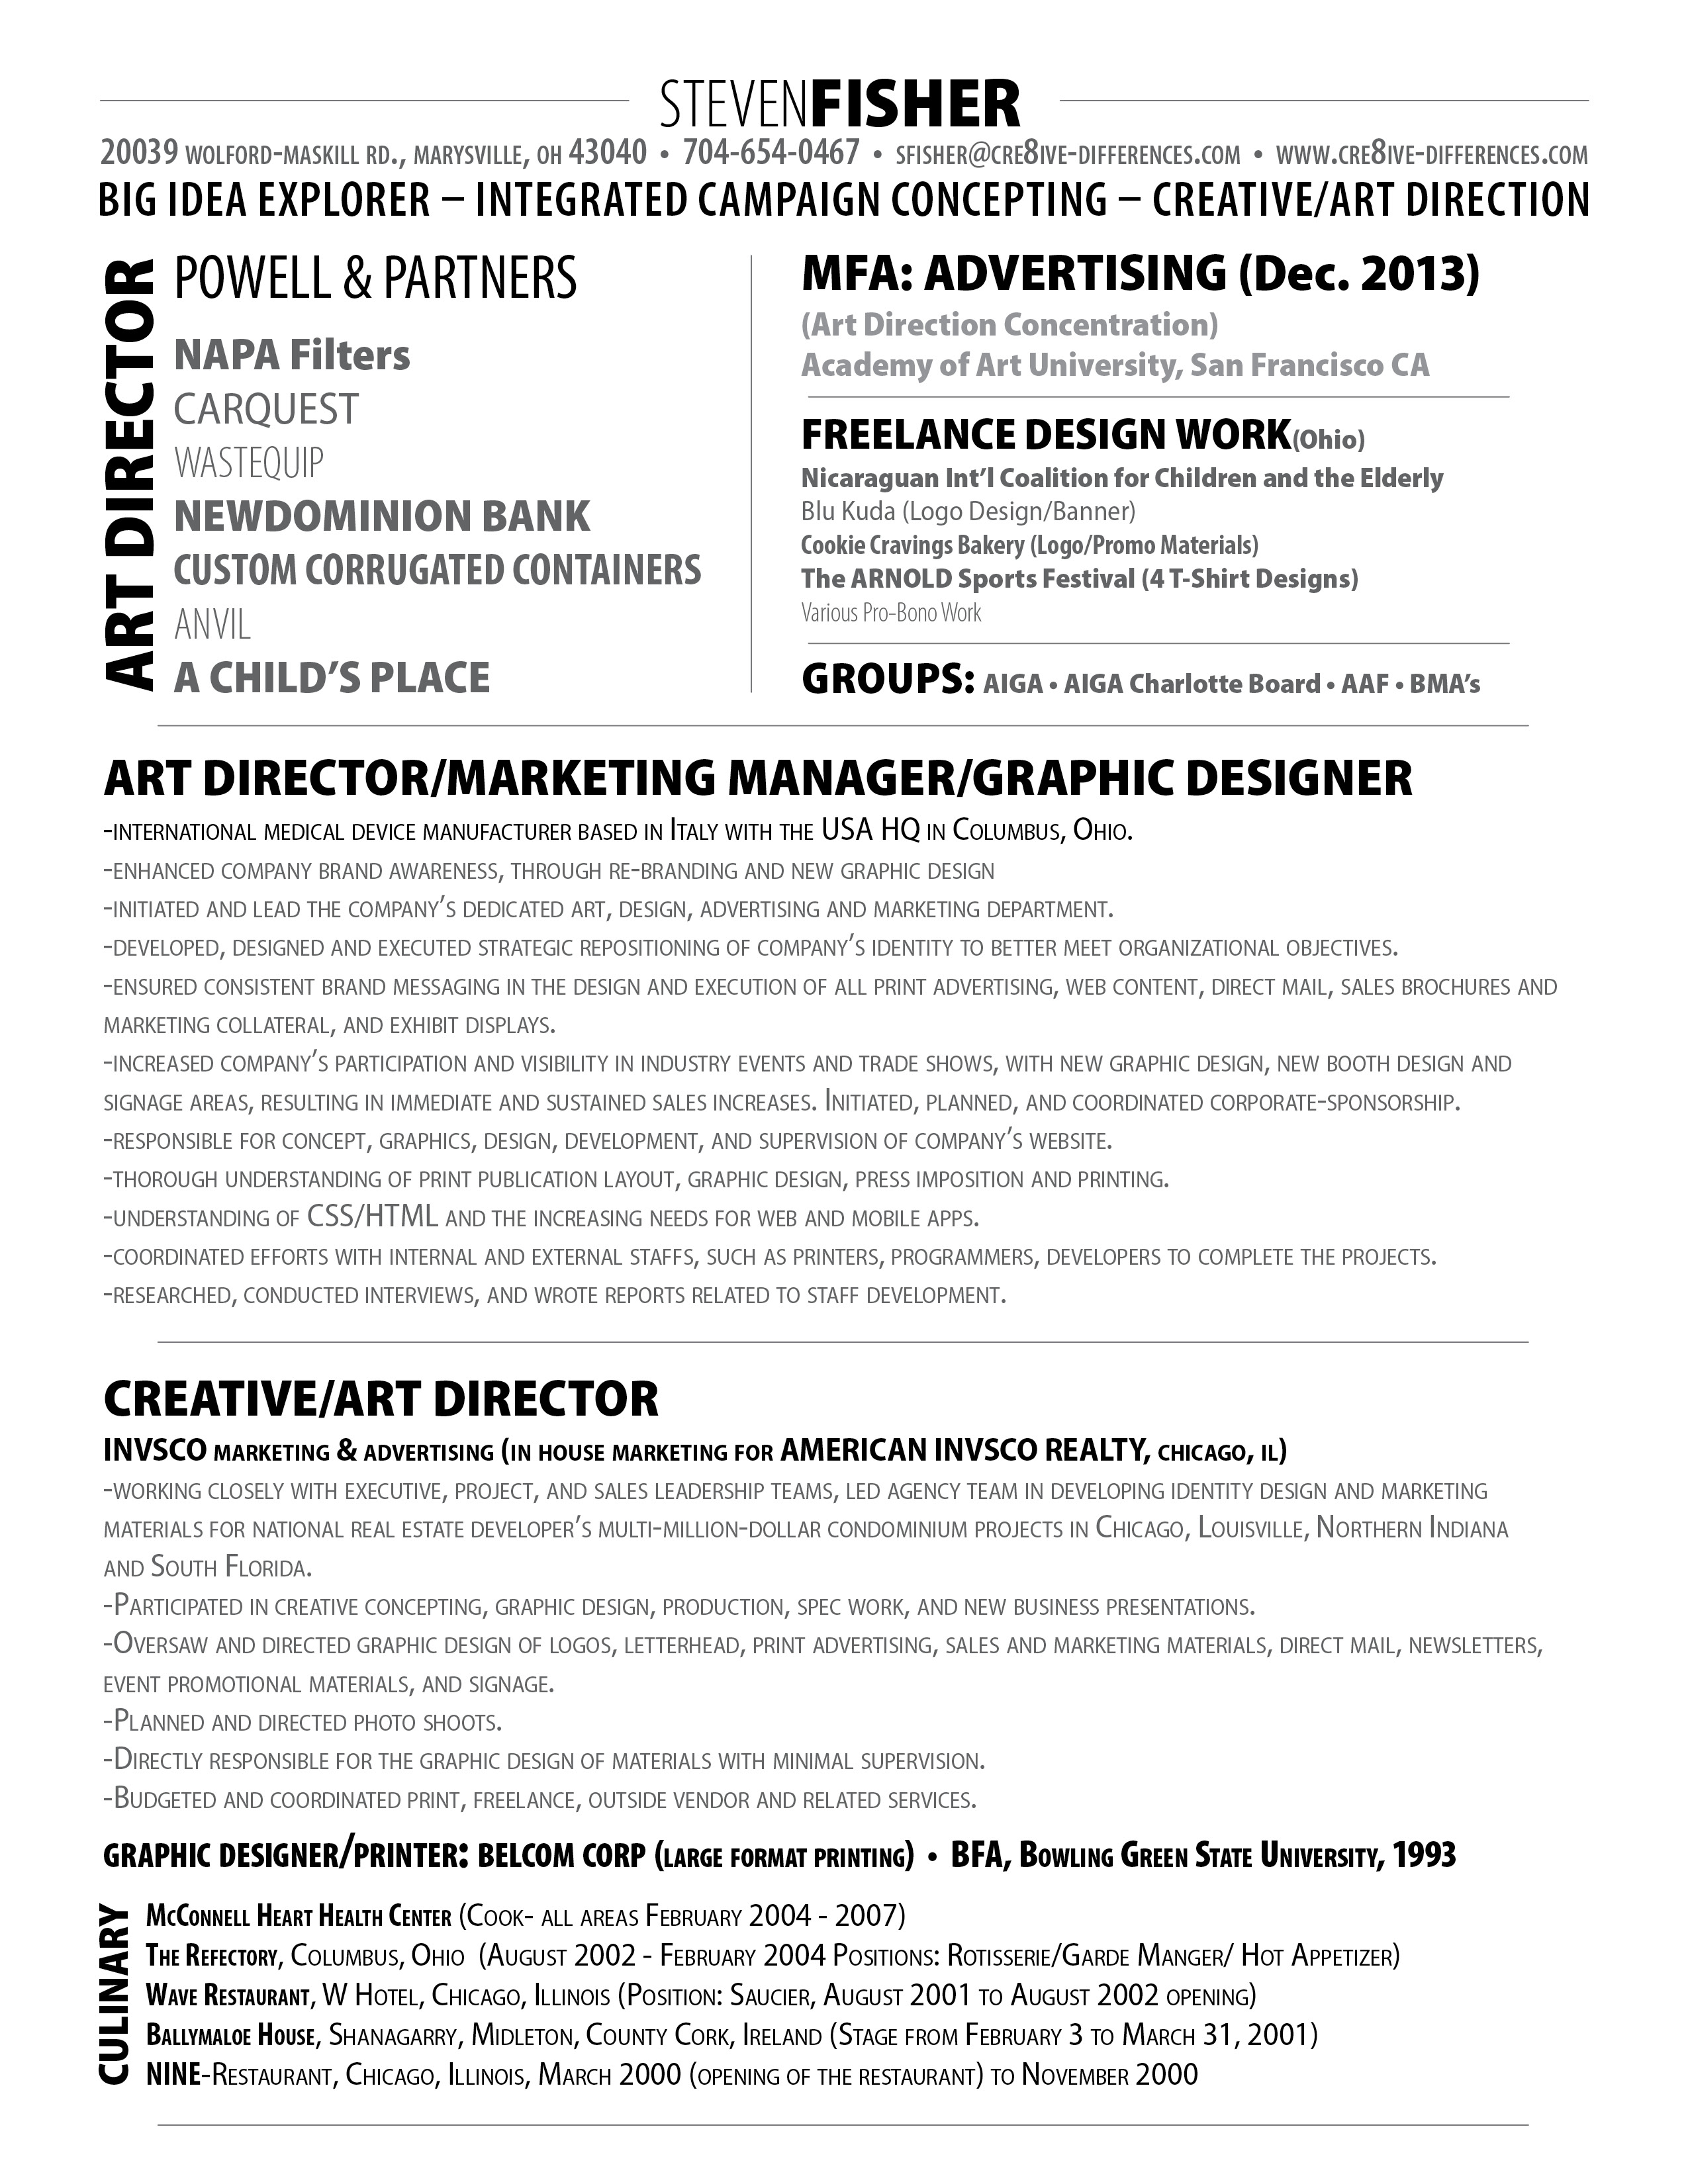 Steven Fisher-Art Director CV 2013 – Cre8ive-Differences, LLC